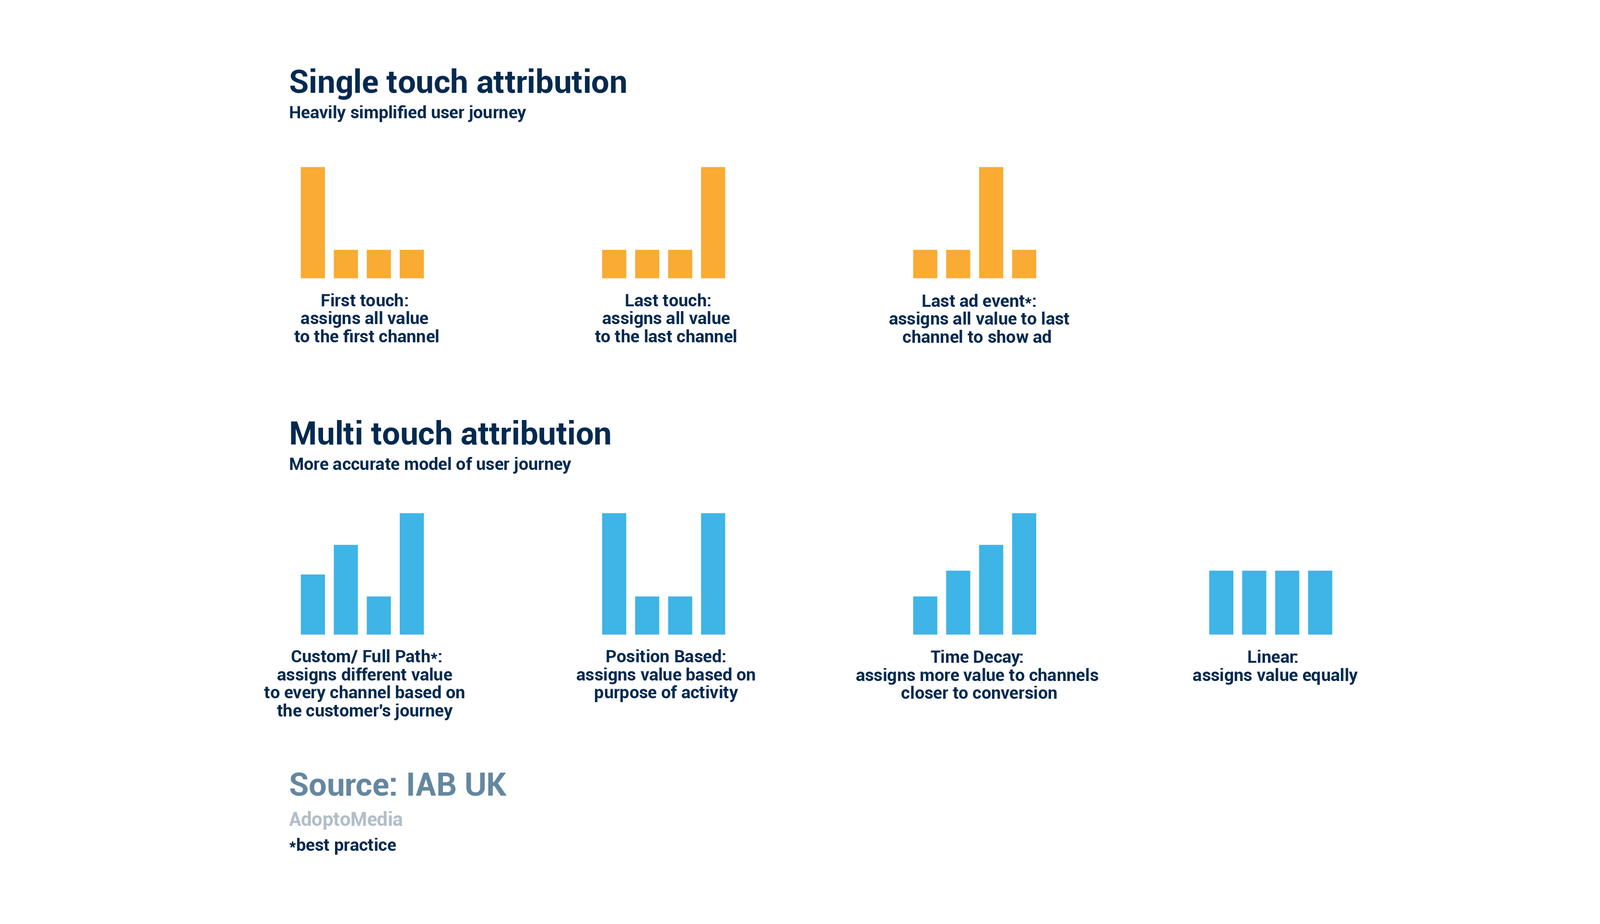 Single touch attribution, Multi touch attribution, user journey, conversion